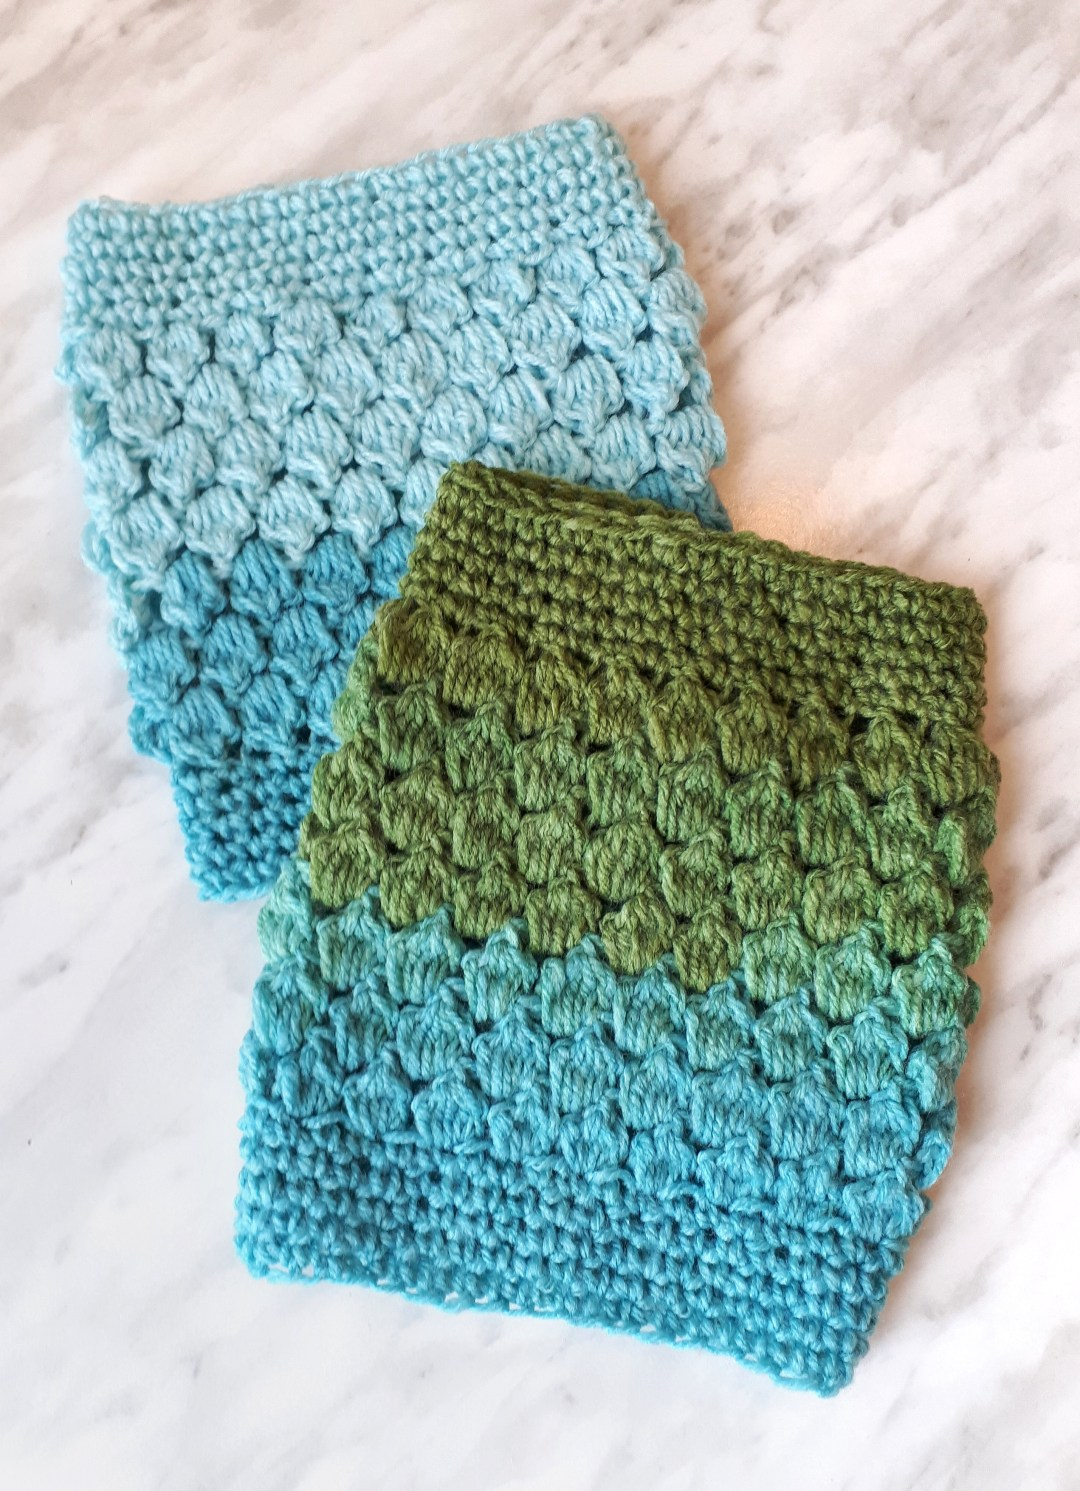 Crochet ankle warmers with free pattern. A free diy tutorial for cozy crochet ankle warmers. Great diy gift ideas!